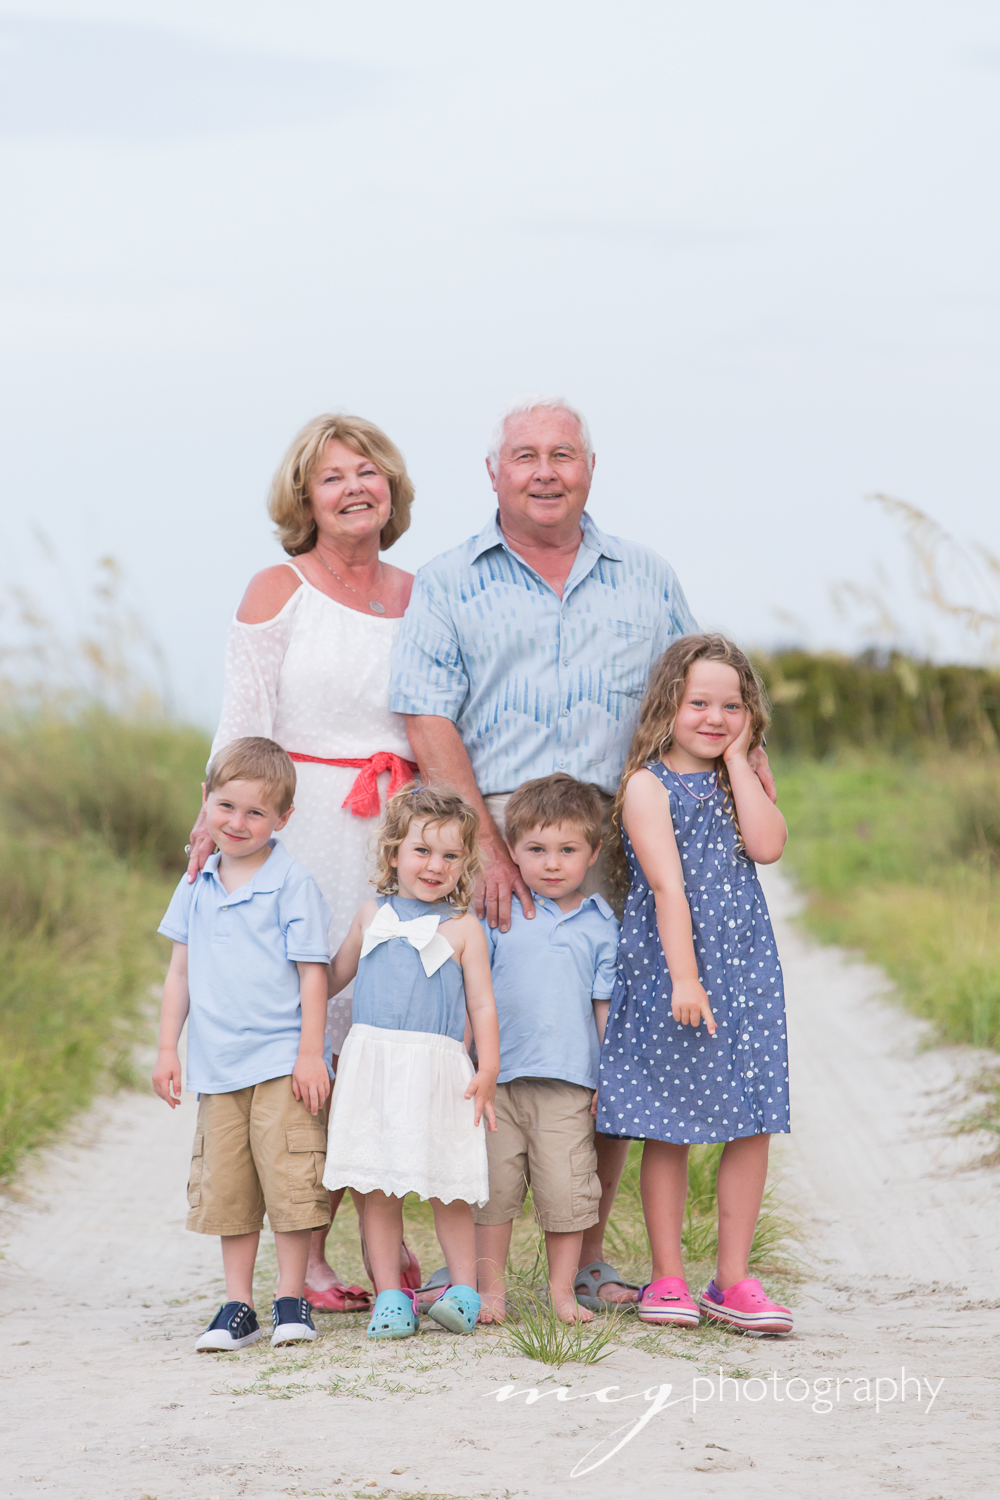 Kiawah Island family photography